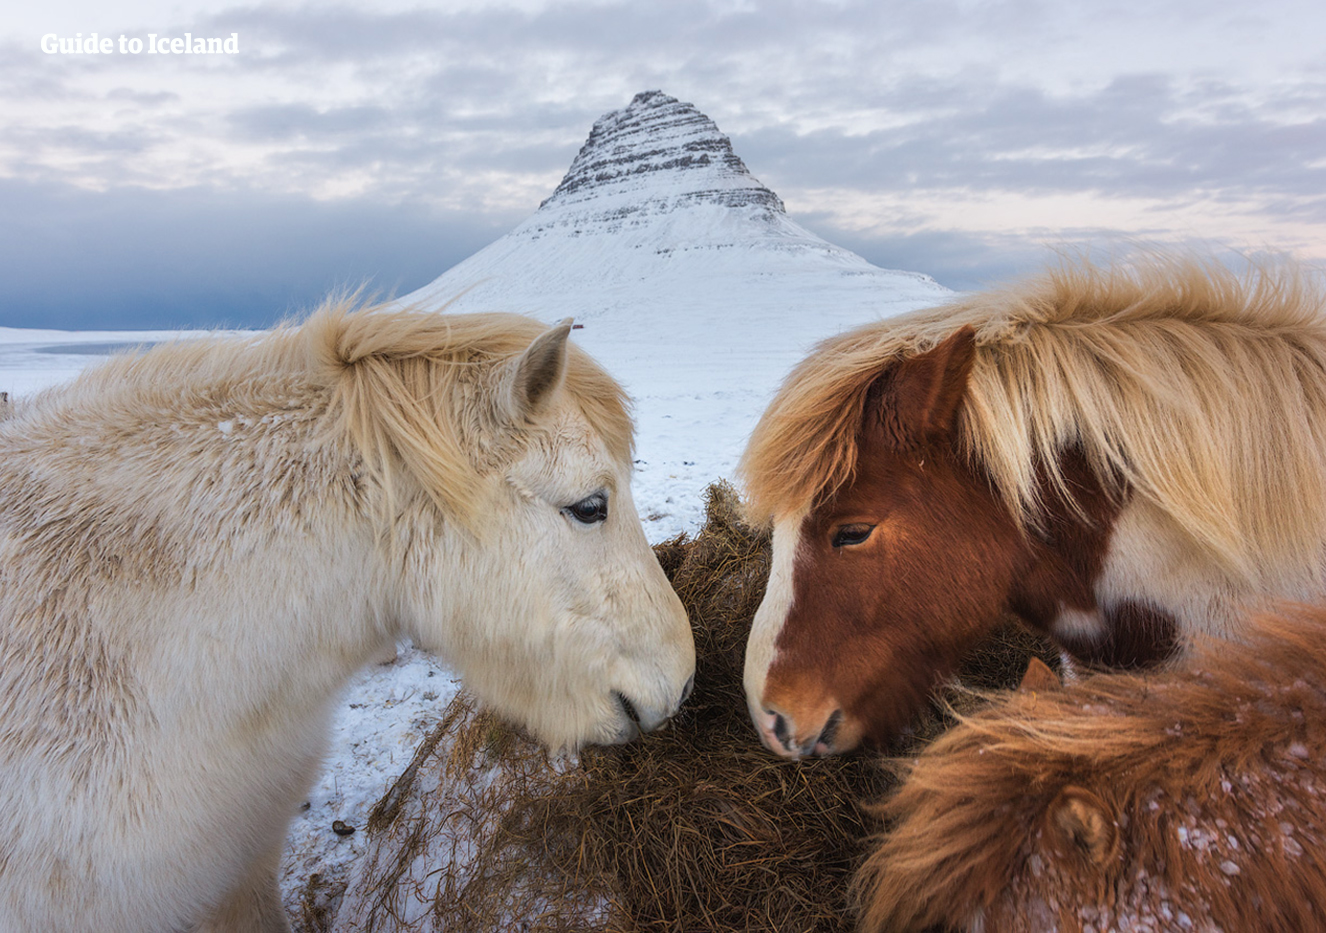 Icelandic horses in front of Mt. Kirkjufell on the Snæfellsnes Peninsula.